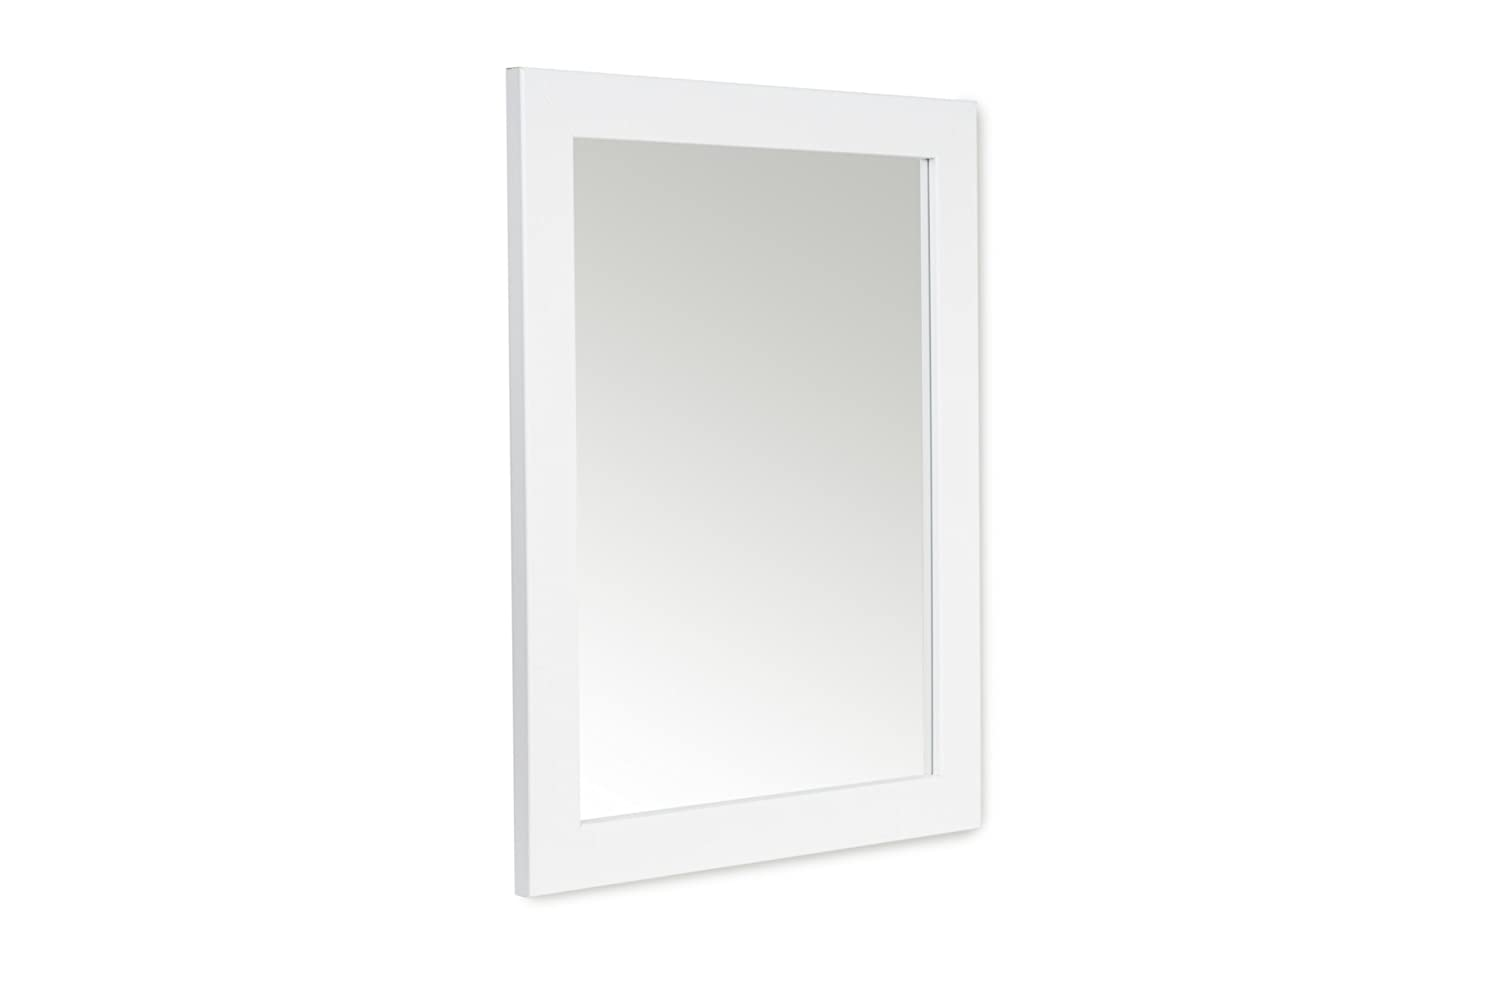 48 x 58cm White Framed Mirror with Wall Hanging Fixings